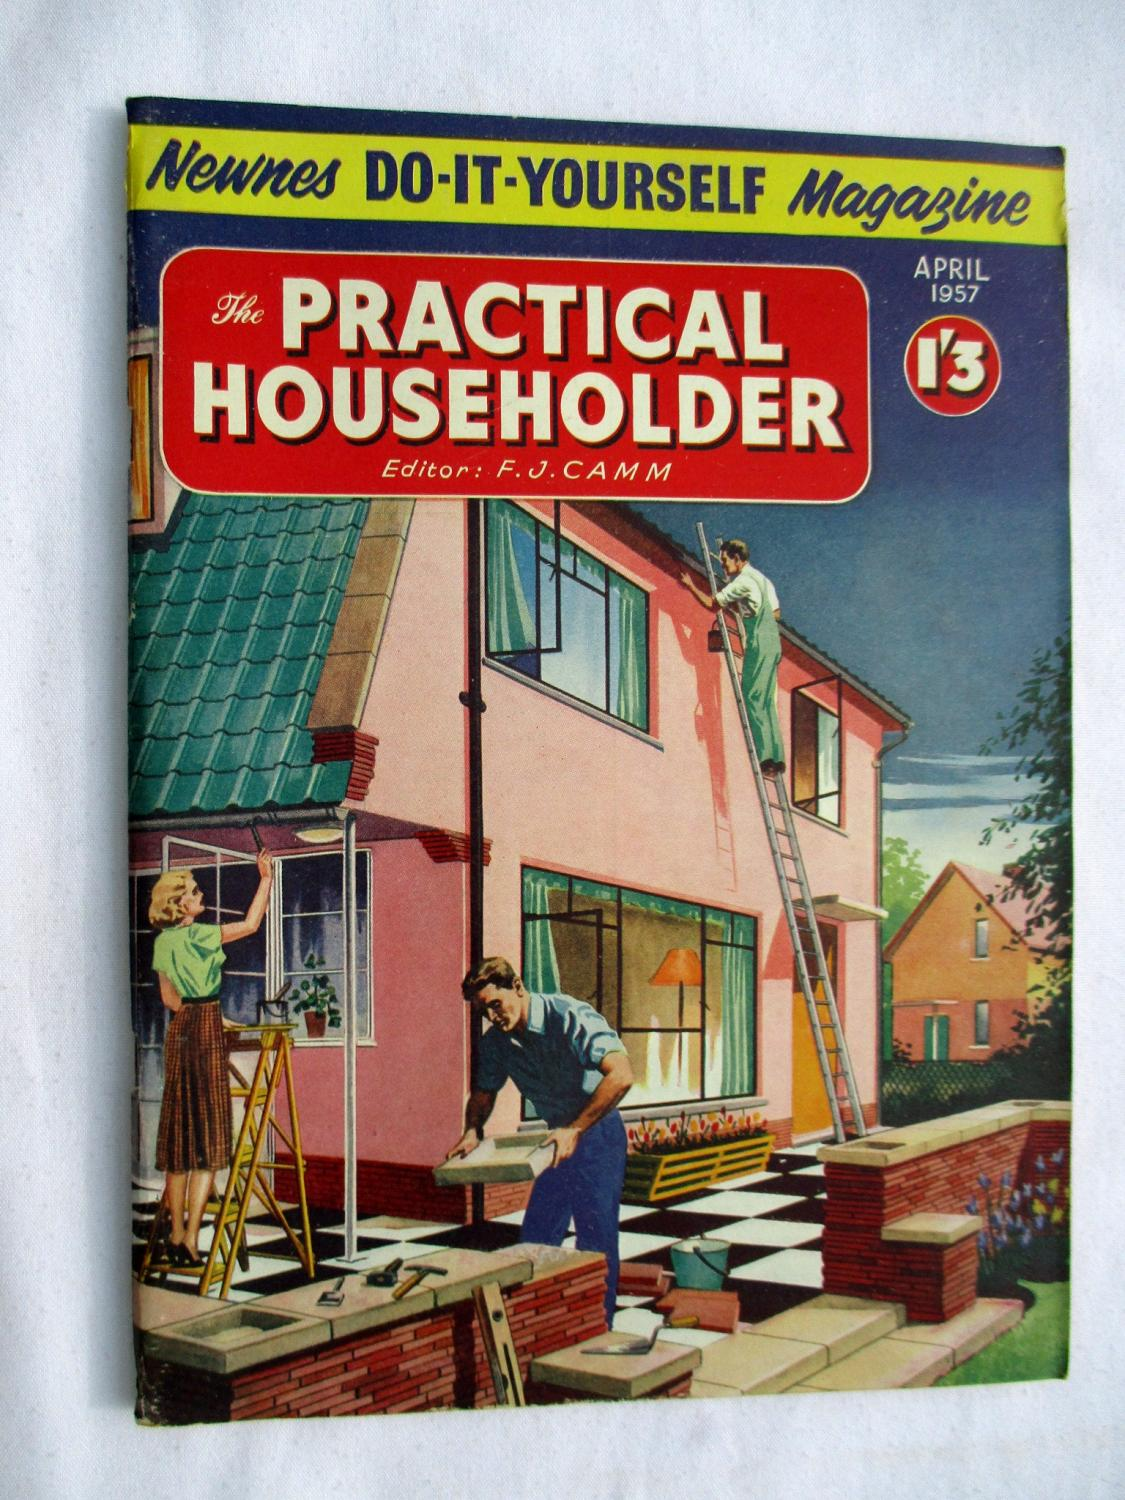 The practical householder april 1957 newnes do it yourself the practical householder april 1957 newnes do it yourself magazine camm solutioingenieria Image collections